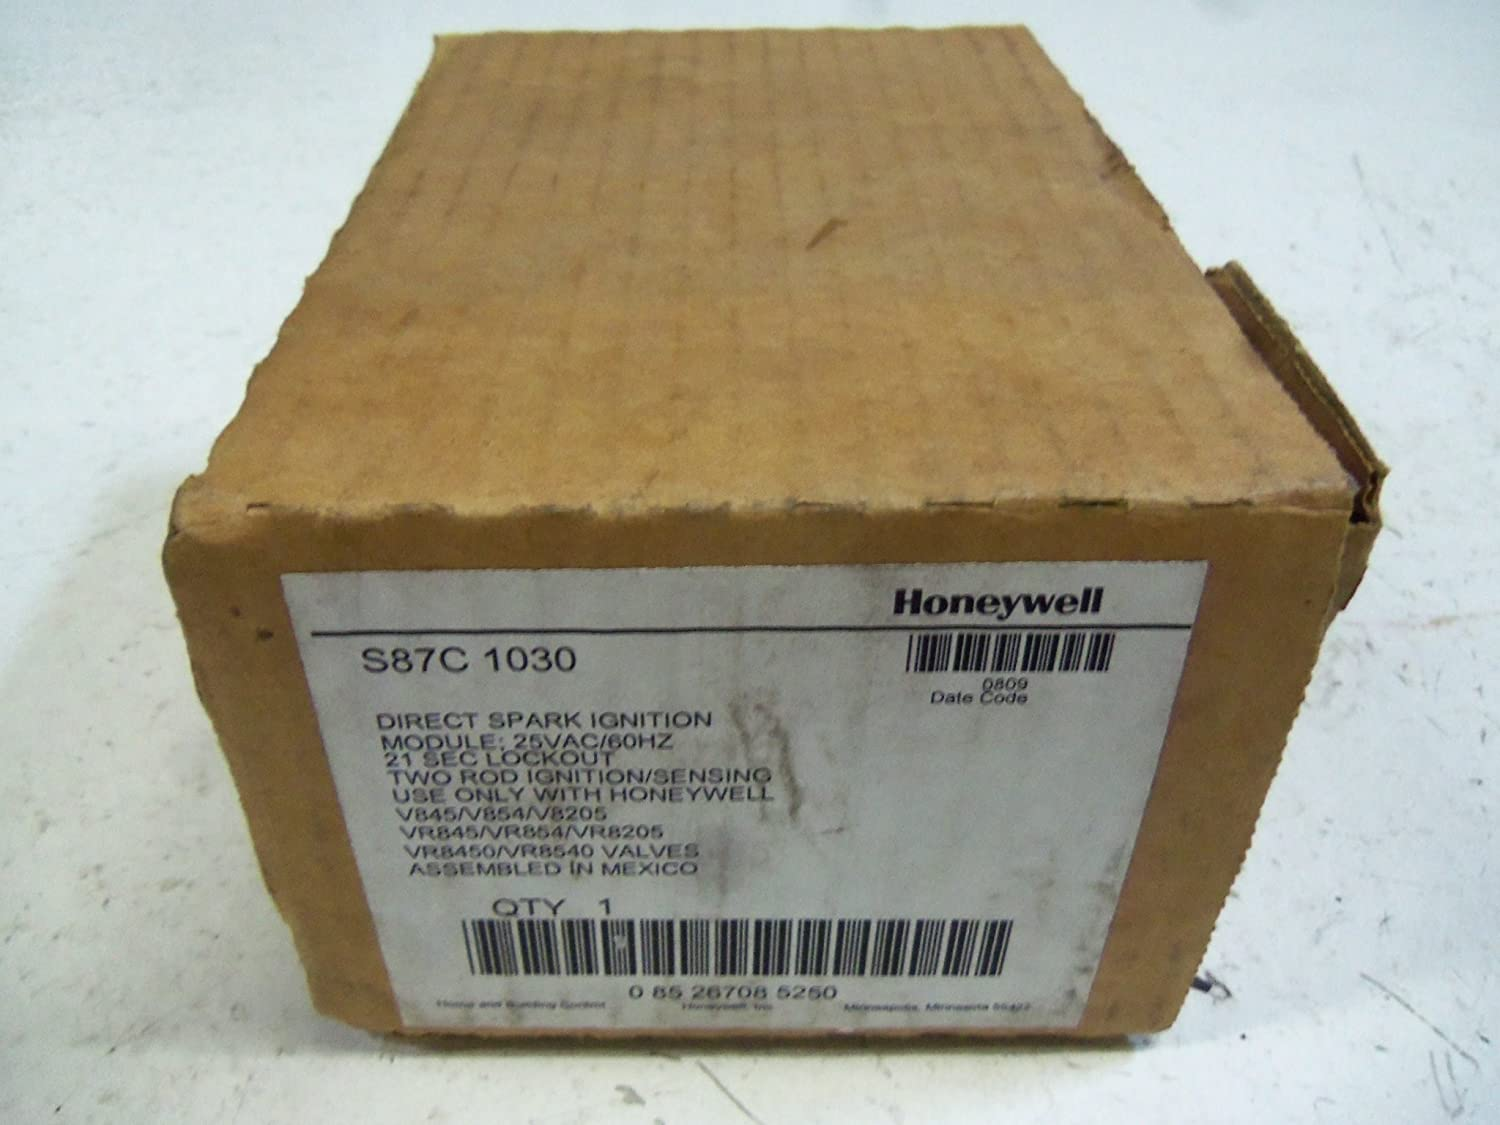 Honeywell, Inc. S87C1030 Direct Spark Ignition Module, 21 sec Trial Time